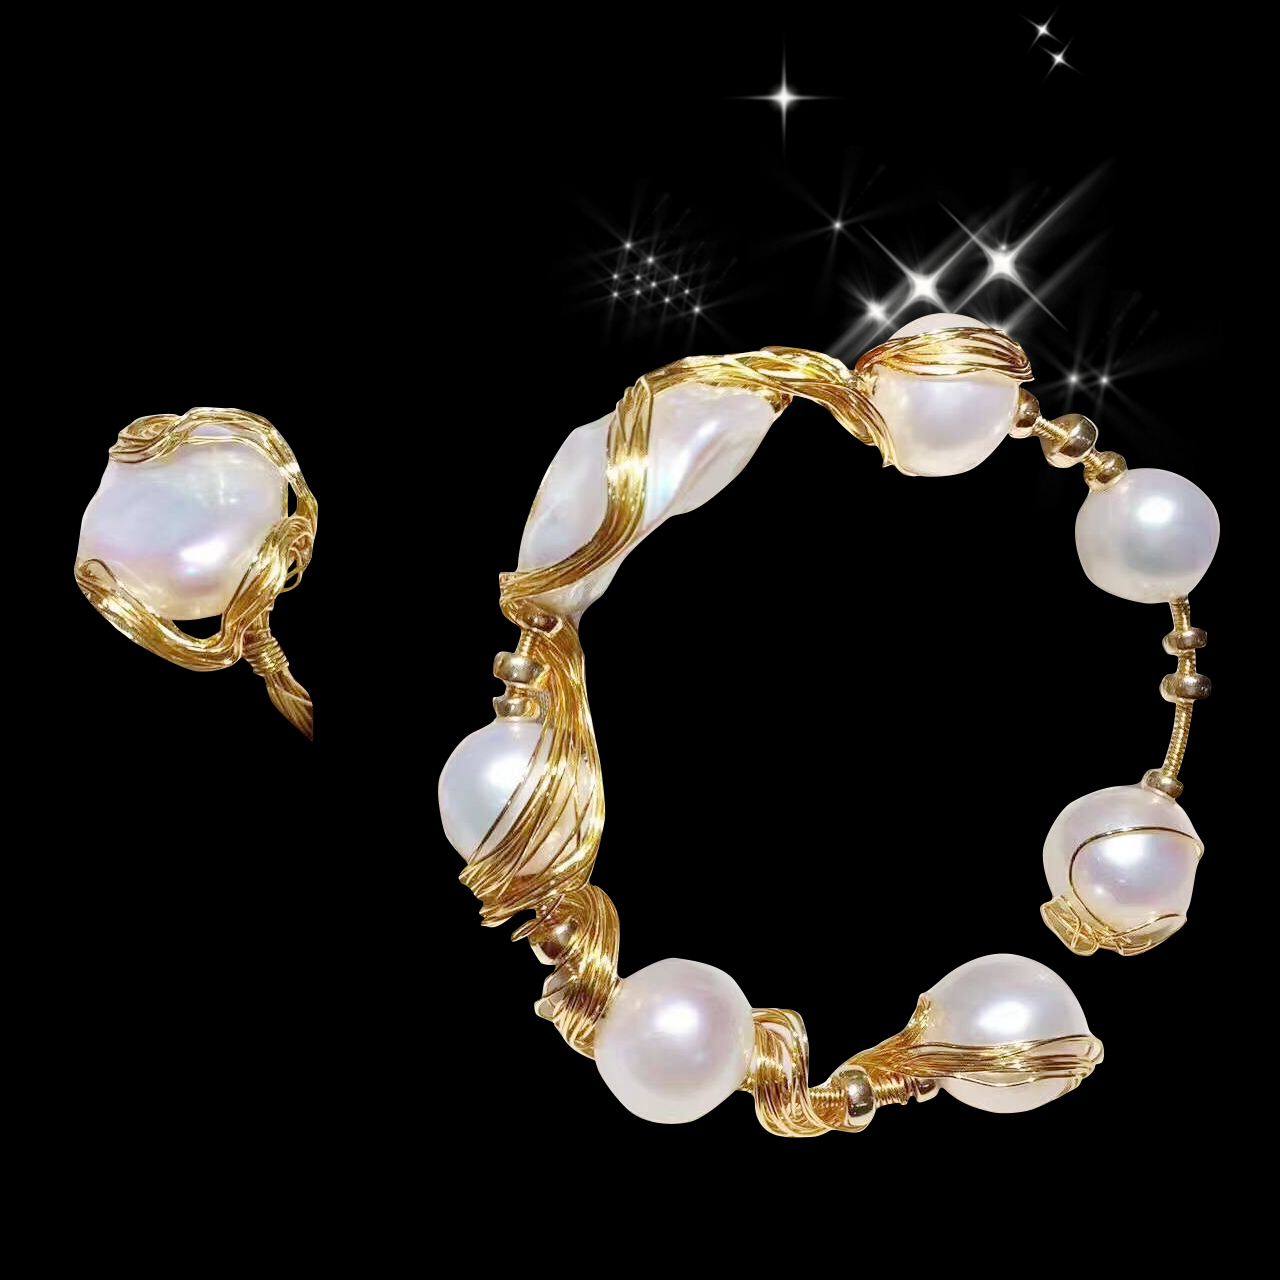 Original design pure handmade 9K GOLD thread wrapped natural freshwater pearl bracelet B private customized